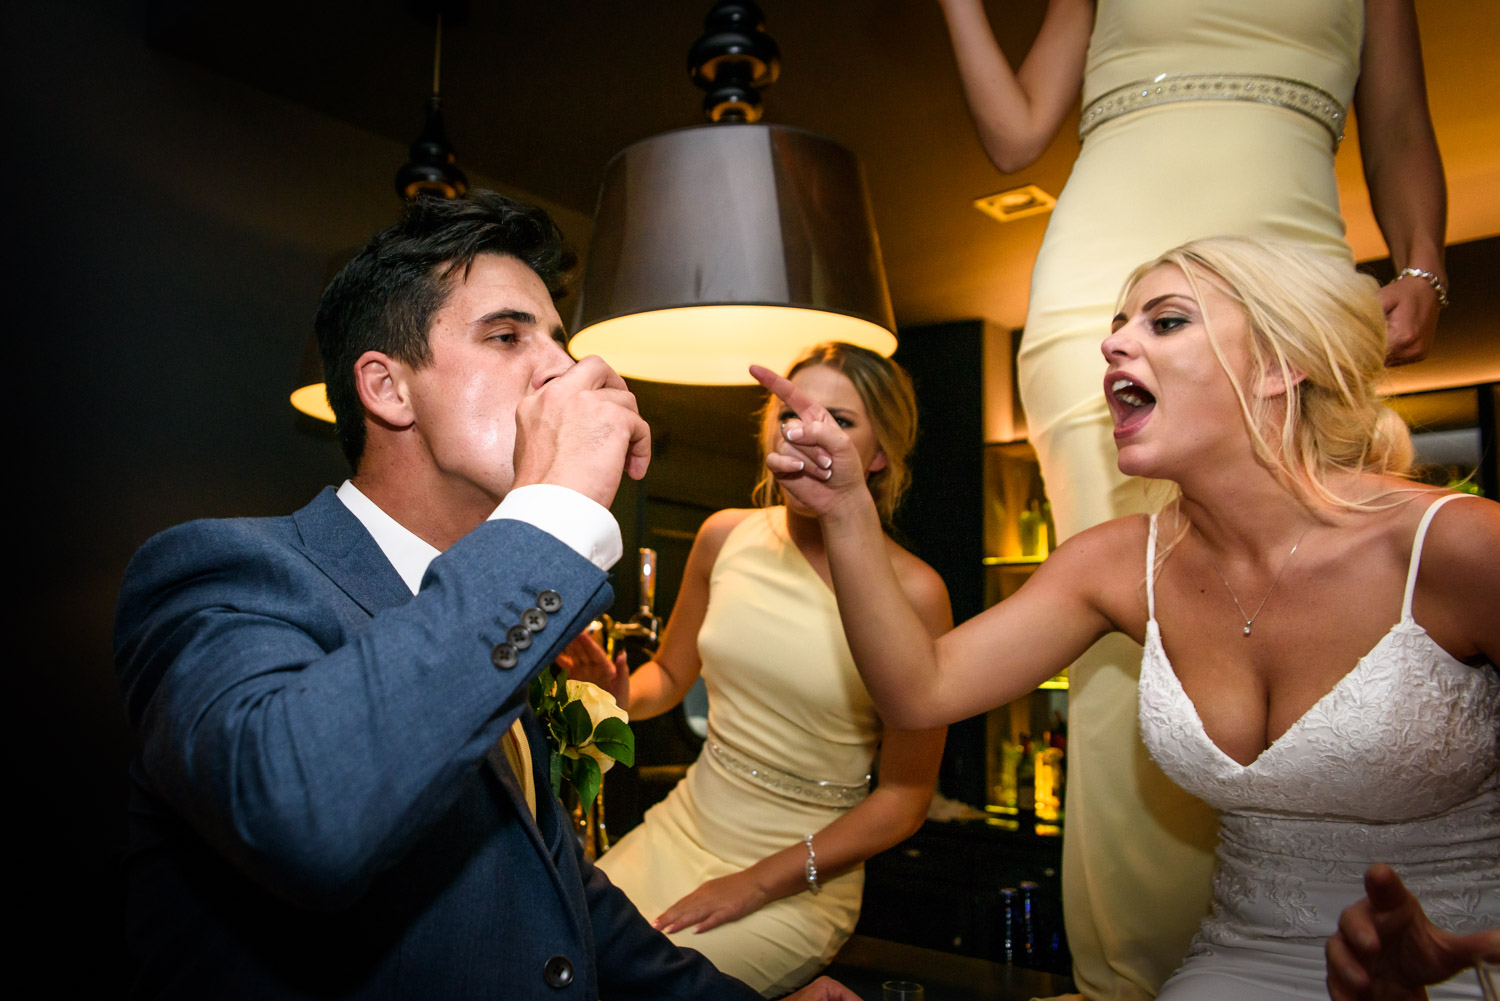 Bride encouraging the groom to drink